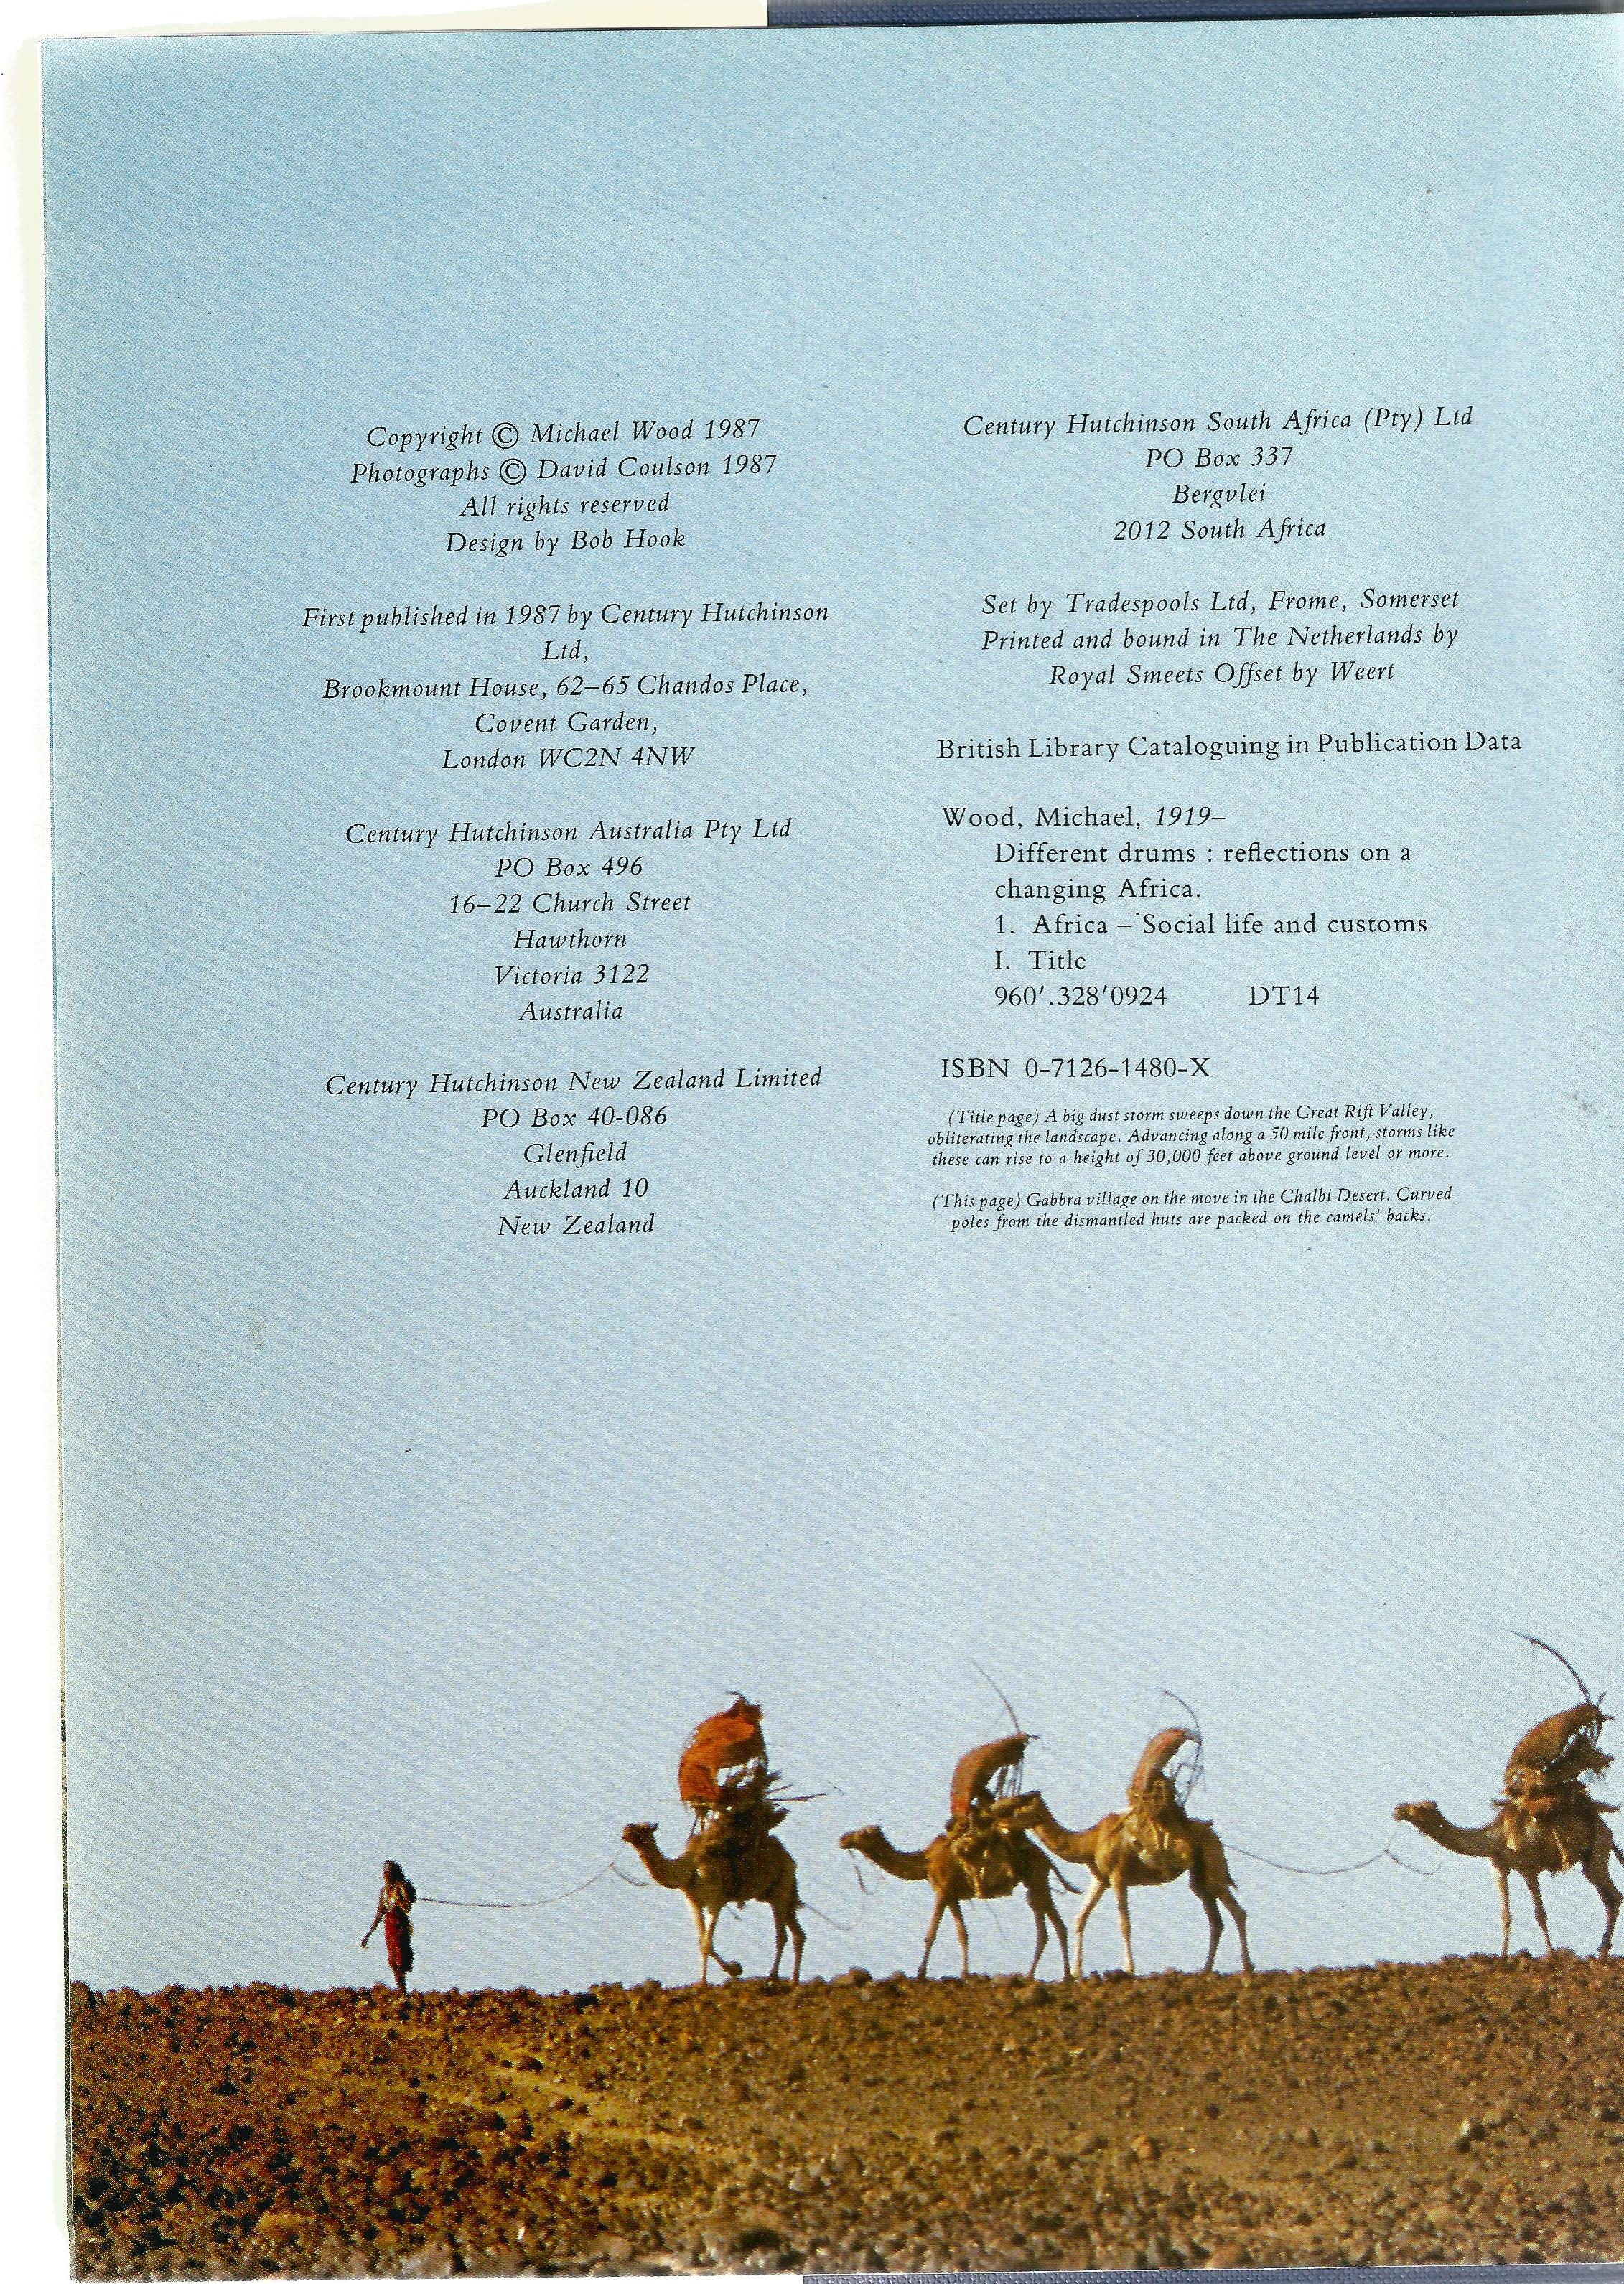 Signed Hardback Book Different Drums Reflections on a changing Africa by Michael Wood with photos by - Image 6 of 7